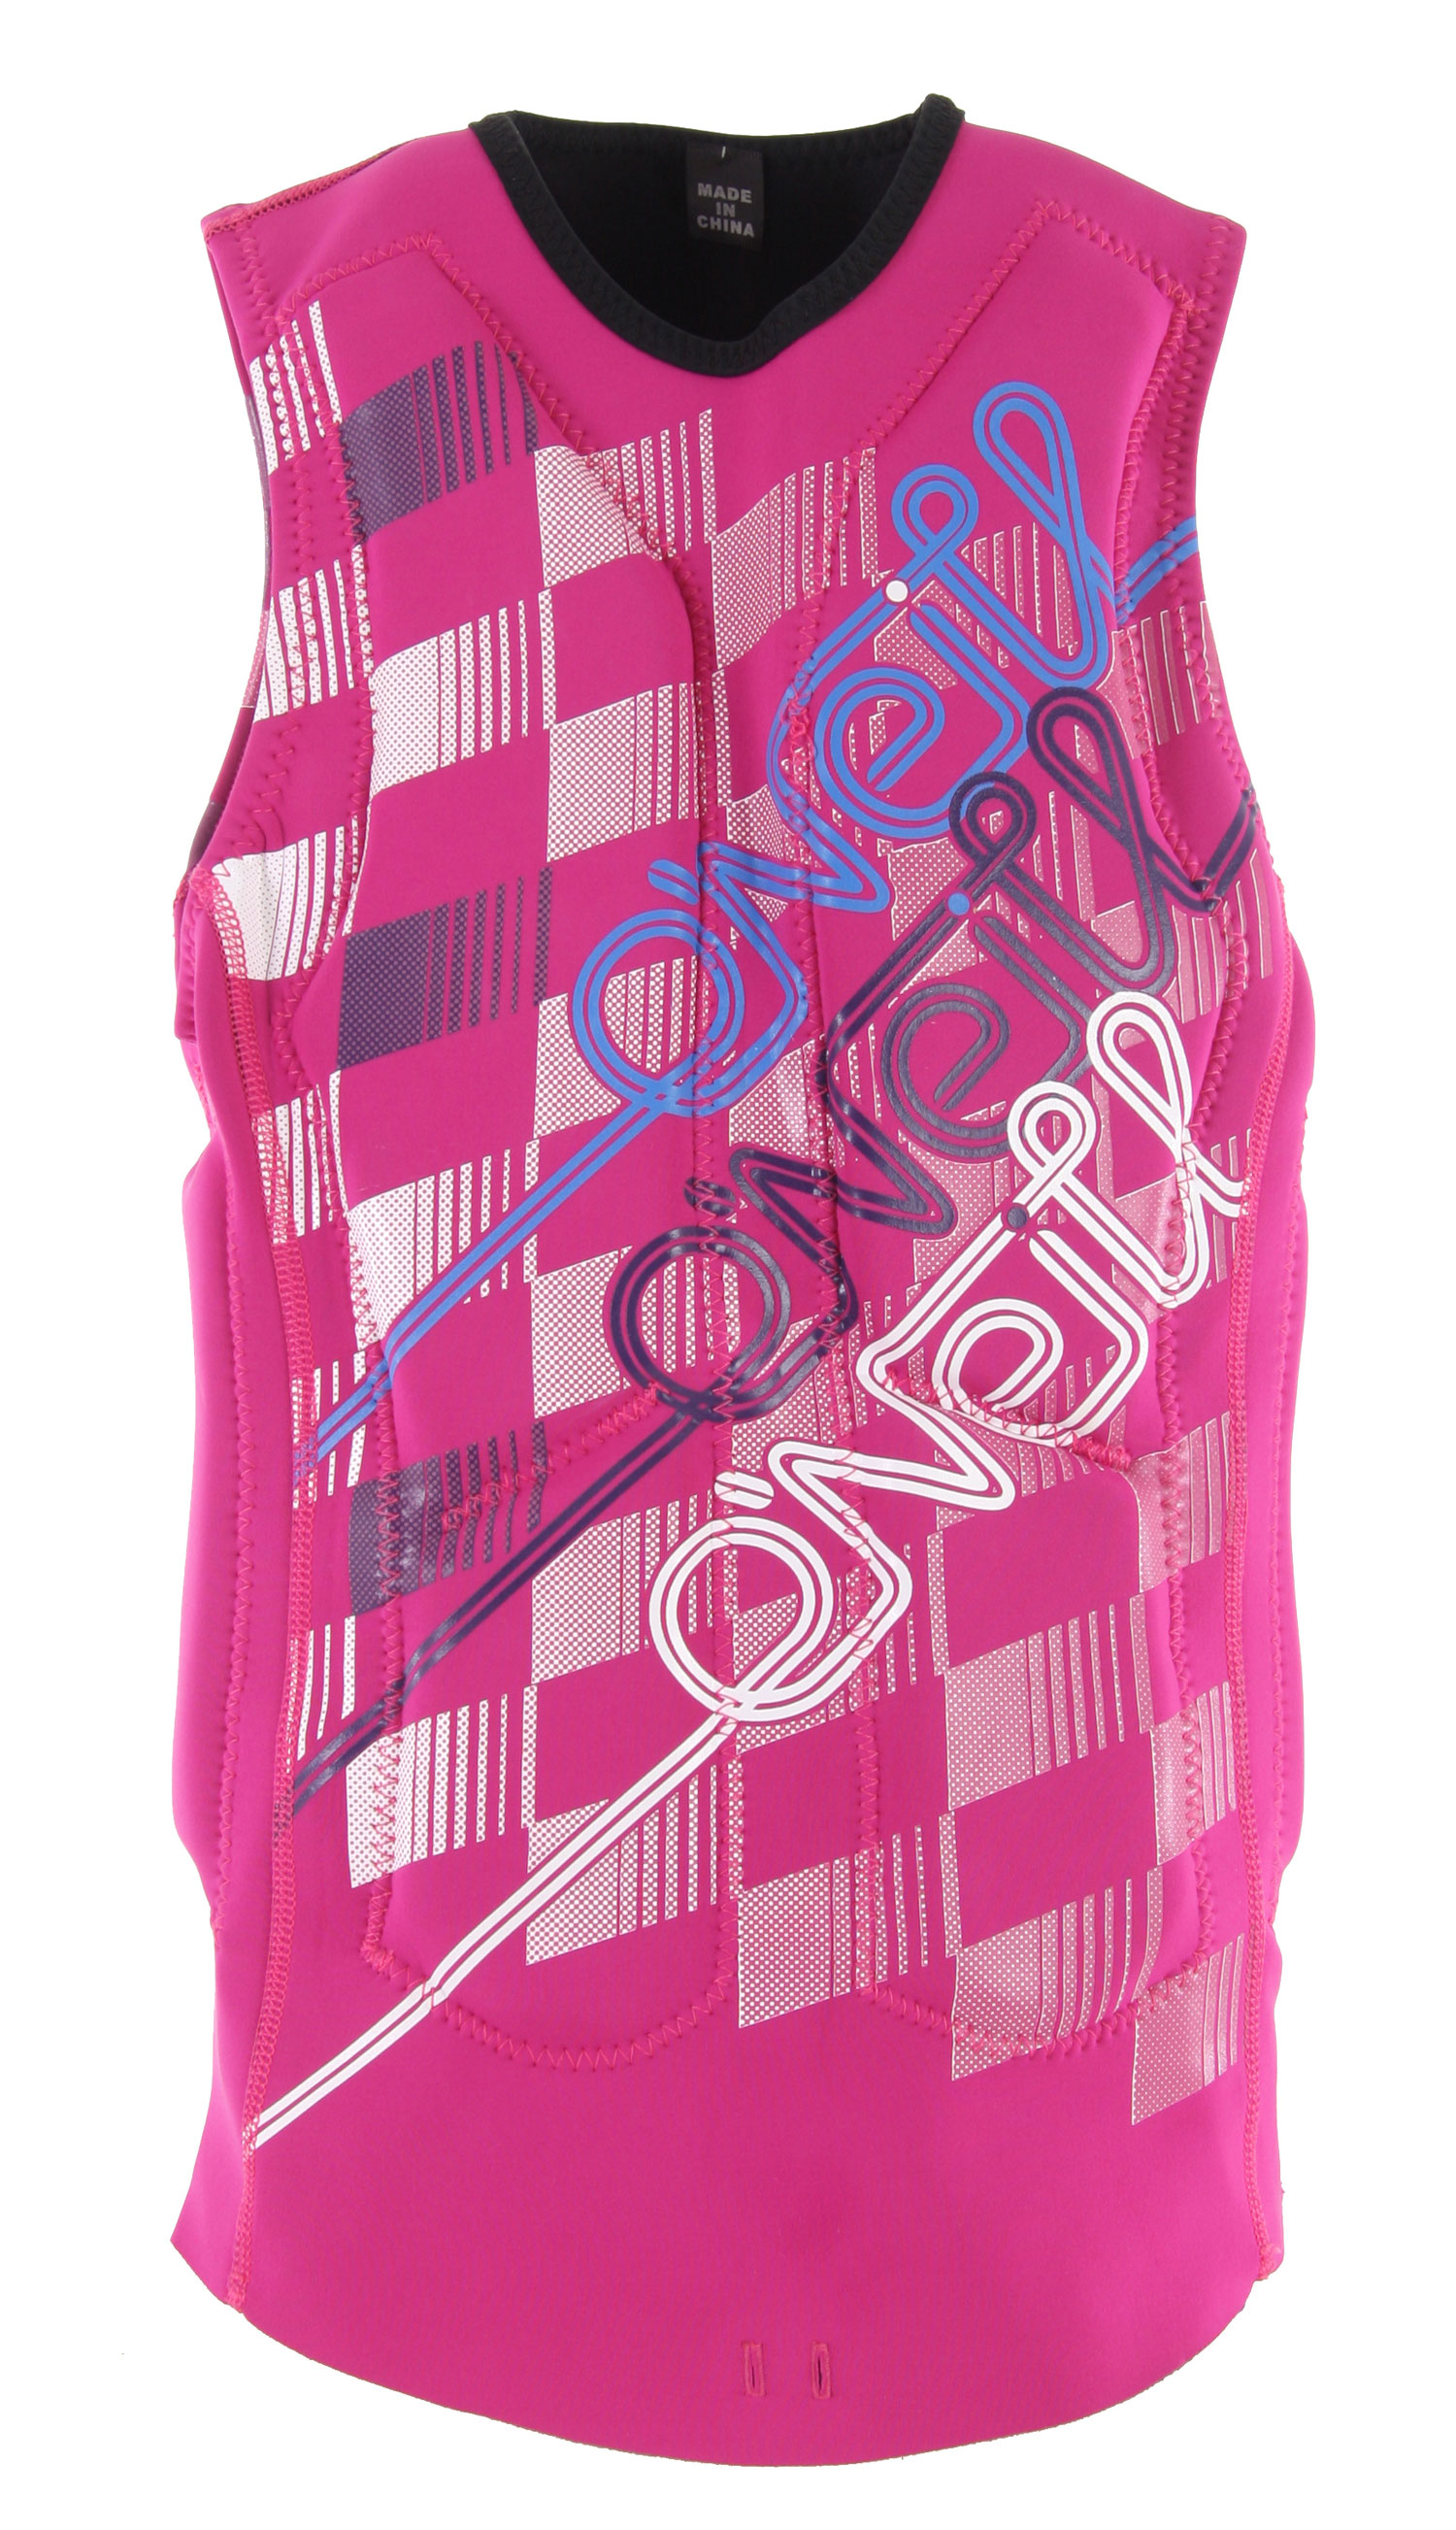 Wake Wakeboard in style with this O'Neill Gooru Padded Wakeboard Vest for women. Enjoy an active lifestyle and look good doing it. The vest features a 100% Ultra Flex DS and a zipper less and buckle free pullover design. With a segmented foam core and anatomical flex points, the vest will provide the protection needed when wakeboarding. The vest is reversible for multiple style options and has strategic armhole sizes and a board short connector for added security.Key Features of the O'Neill Gooru Padded Wakeboard Vest: Comp Vest 100% UltraFlex DS Zipperless and Buckle-free pull over design Reversible Segmented foam core Anatomical flex points Strategic armhole size Boardshort connector - $90.95